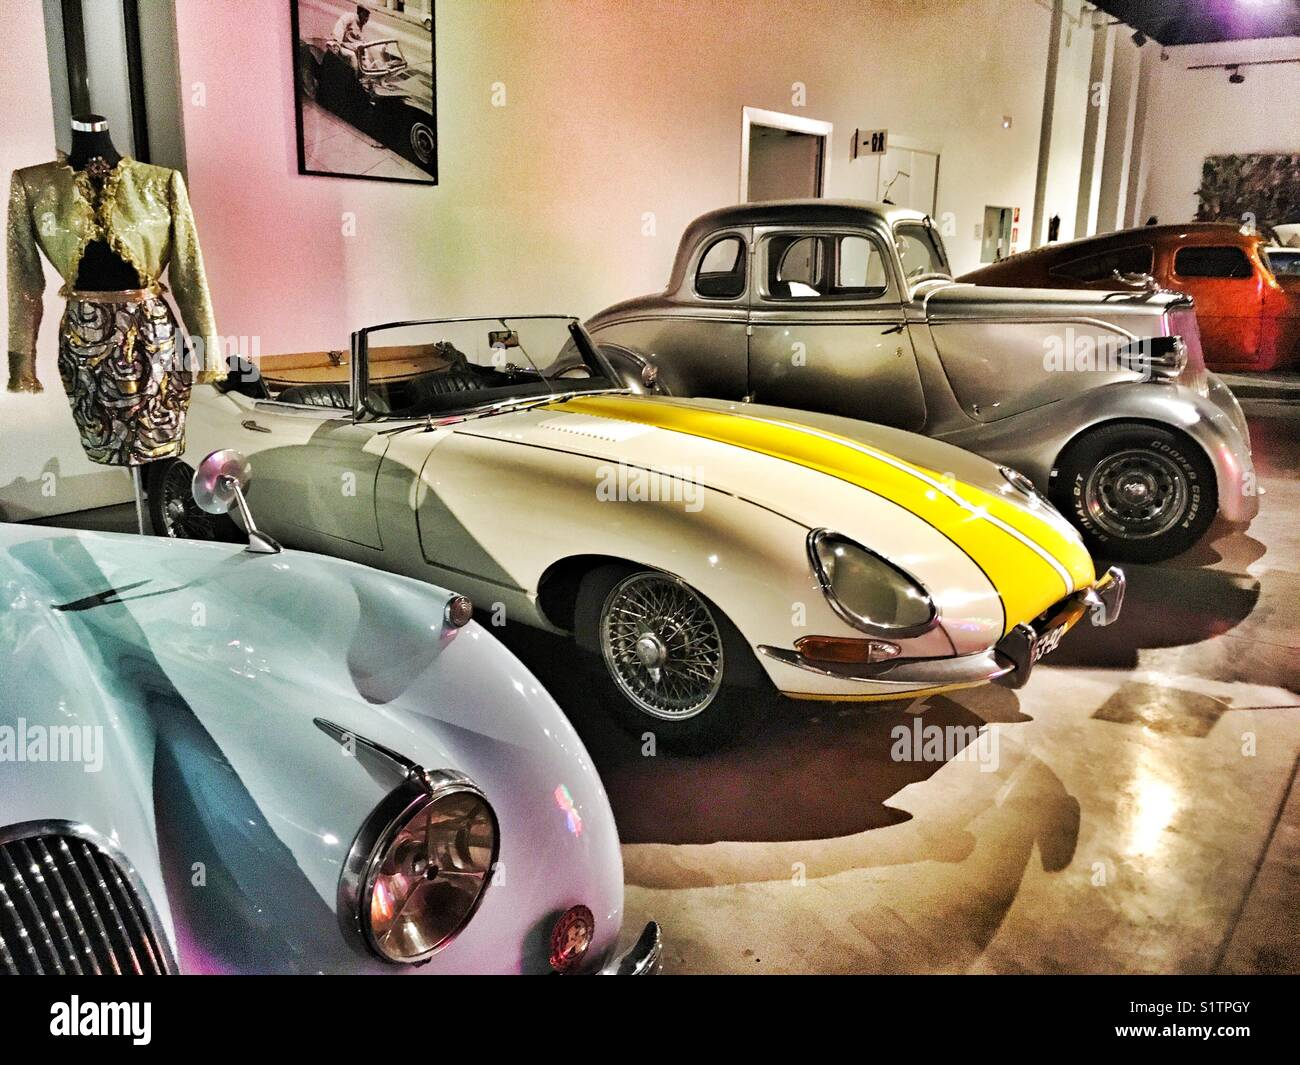 Automobile museum of Málaga, Andalusia, Spain. Jaguar 1952, Jaguar 1961, Ford 1934 model 40 - Stock Image